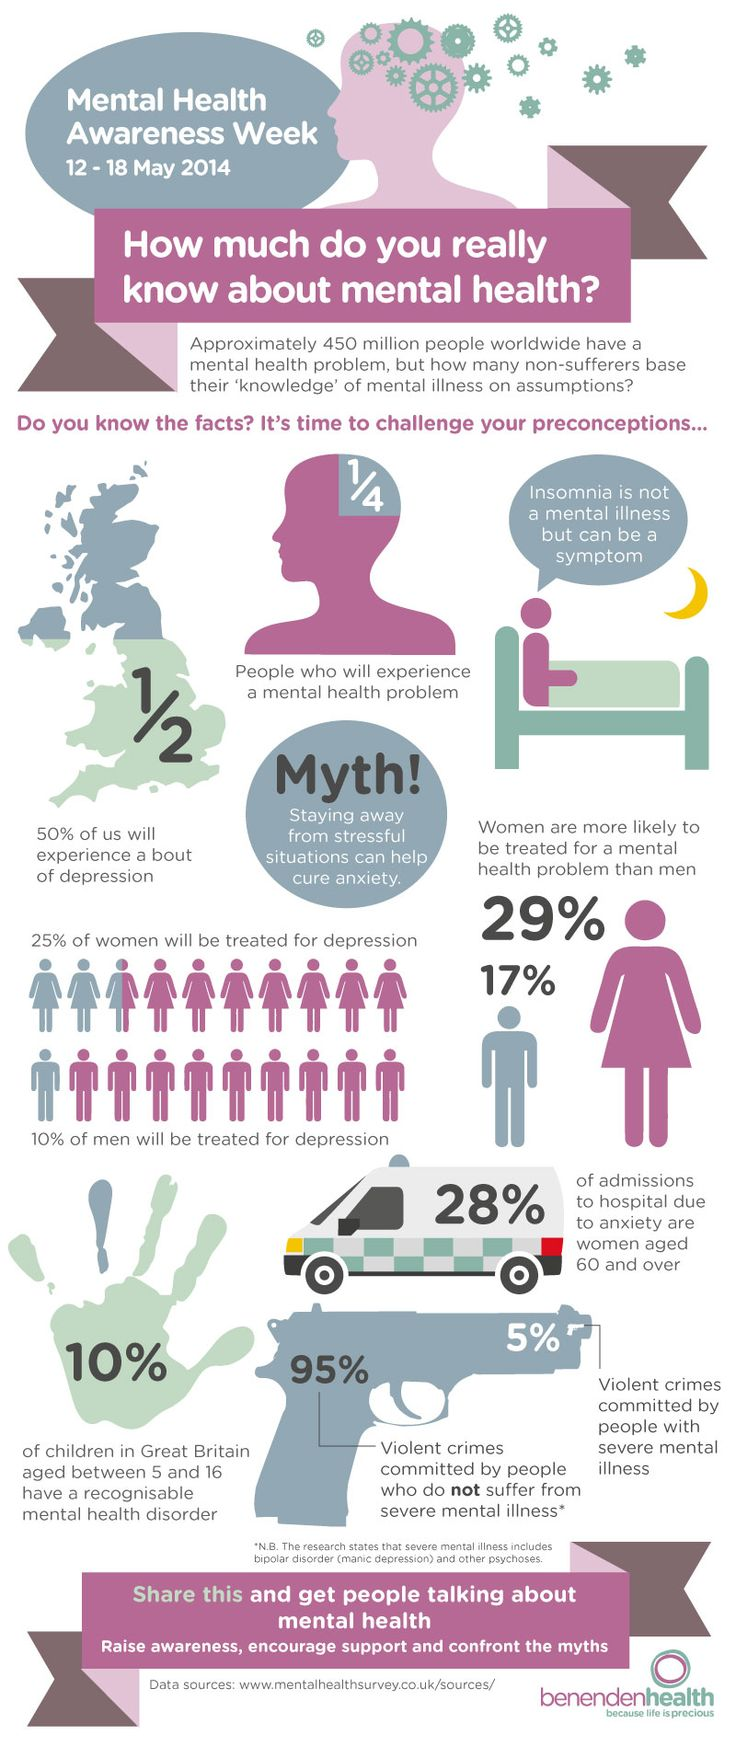 Forth coming Mental Health week Mental Health Survey - how much do you know